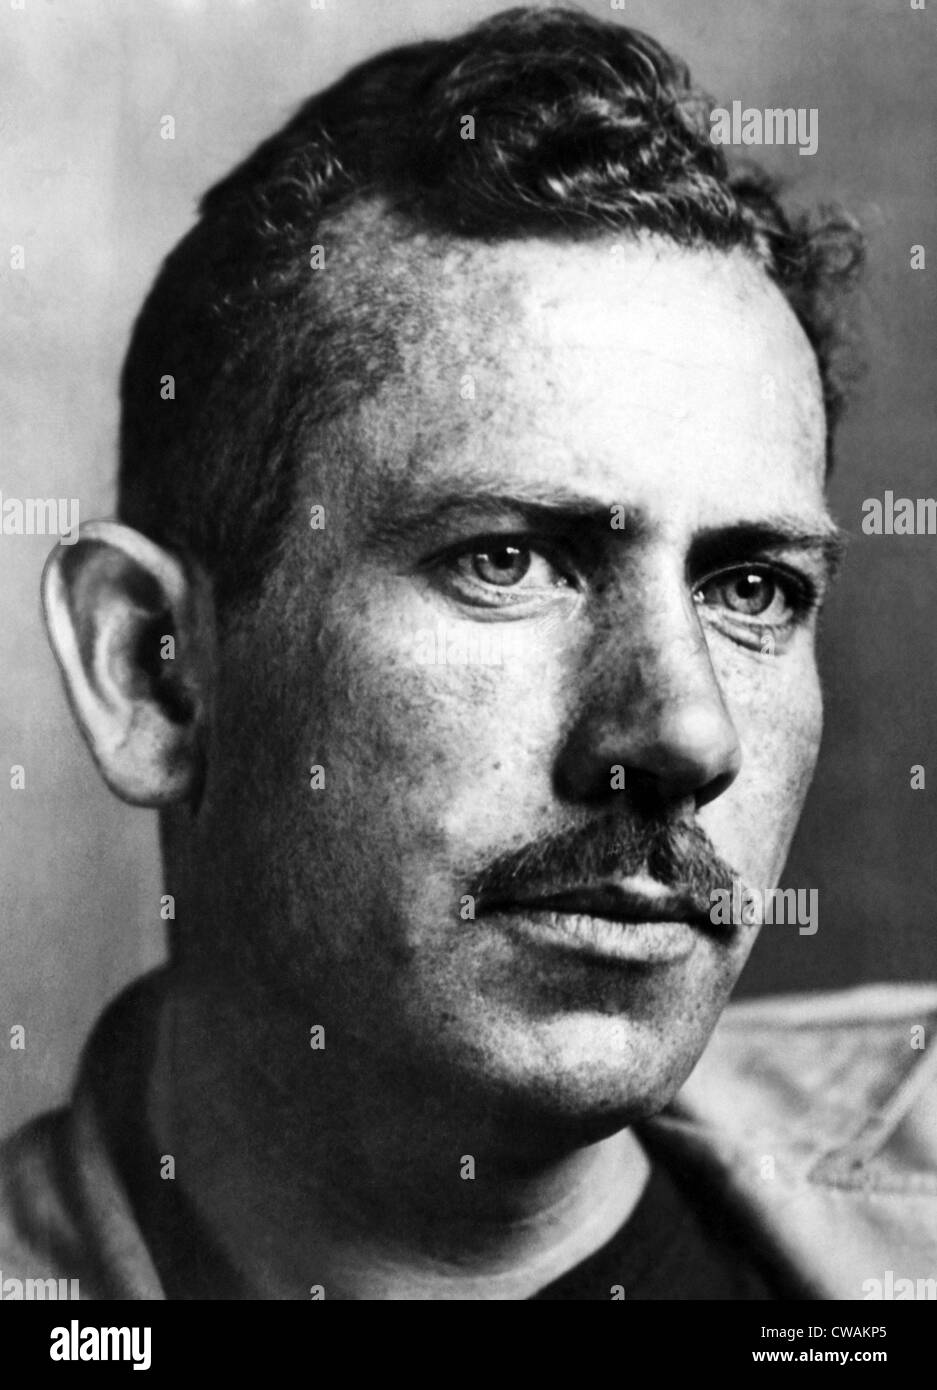 John Steinbeck (1902-1968), American author, circa 1930s. Courtesy: CSU Archives/Everett Collection. - Stock Image